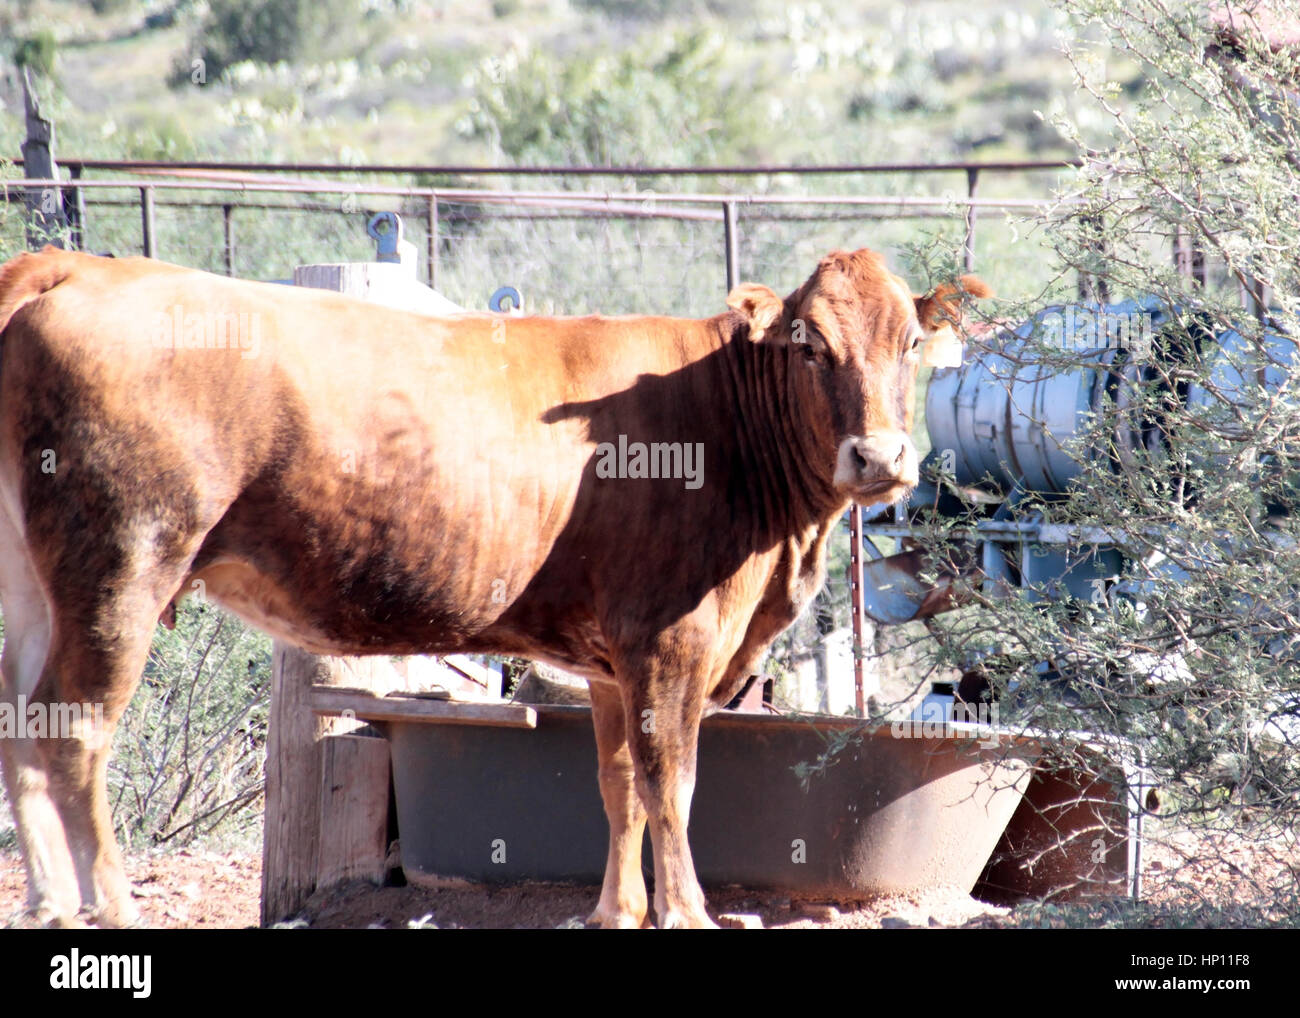 This is a cow in Cordes Az standing near trough and fence staring at photographer - Stock Image